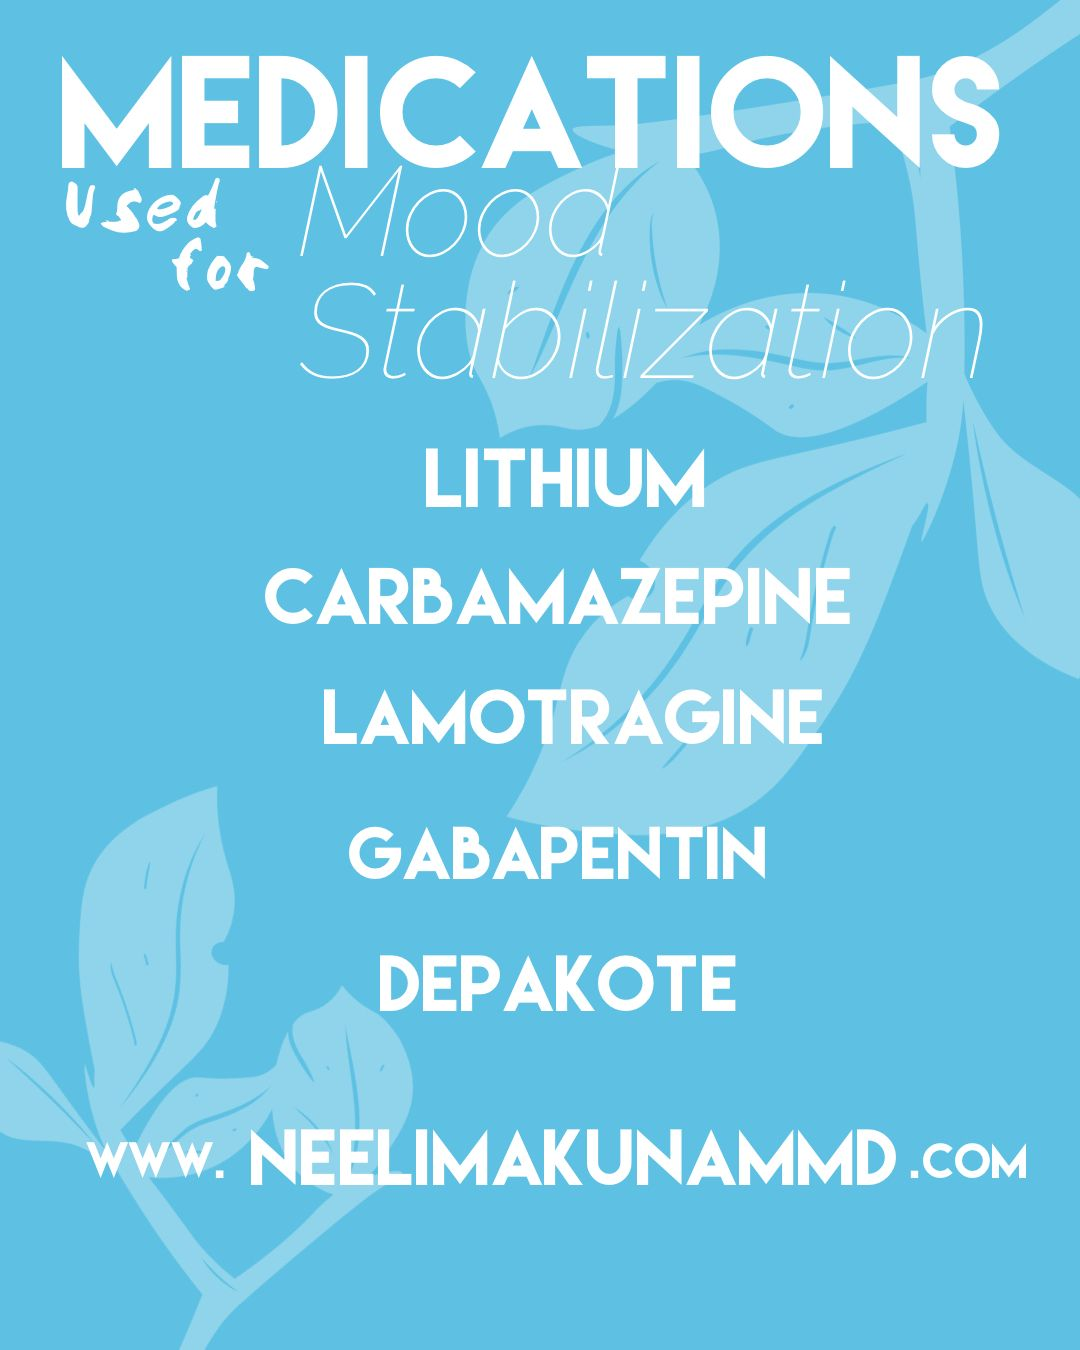 These Are Medications For Mood Stabilization So Are